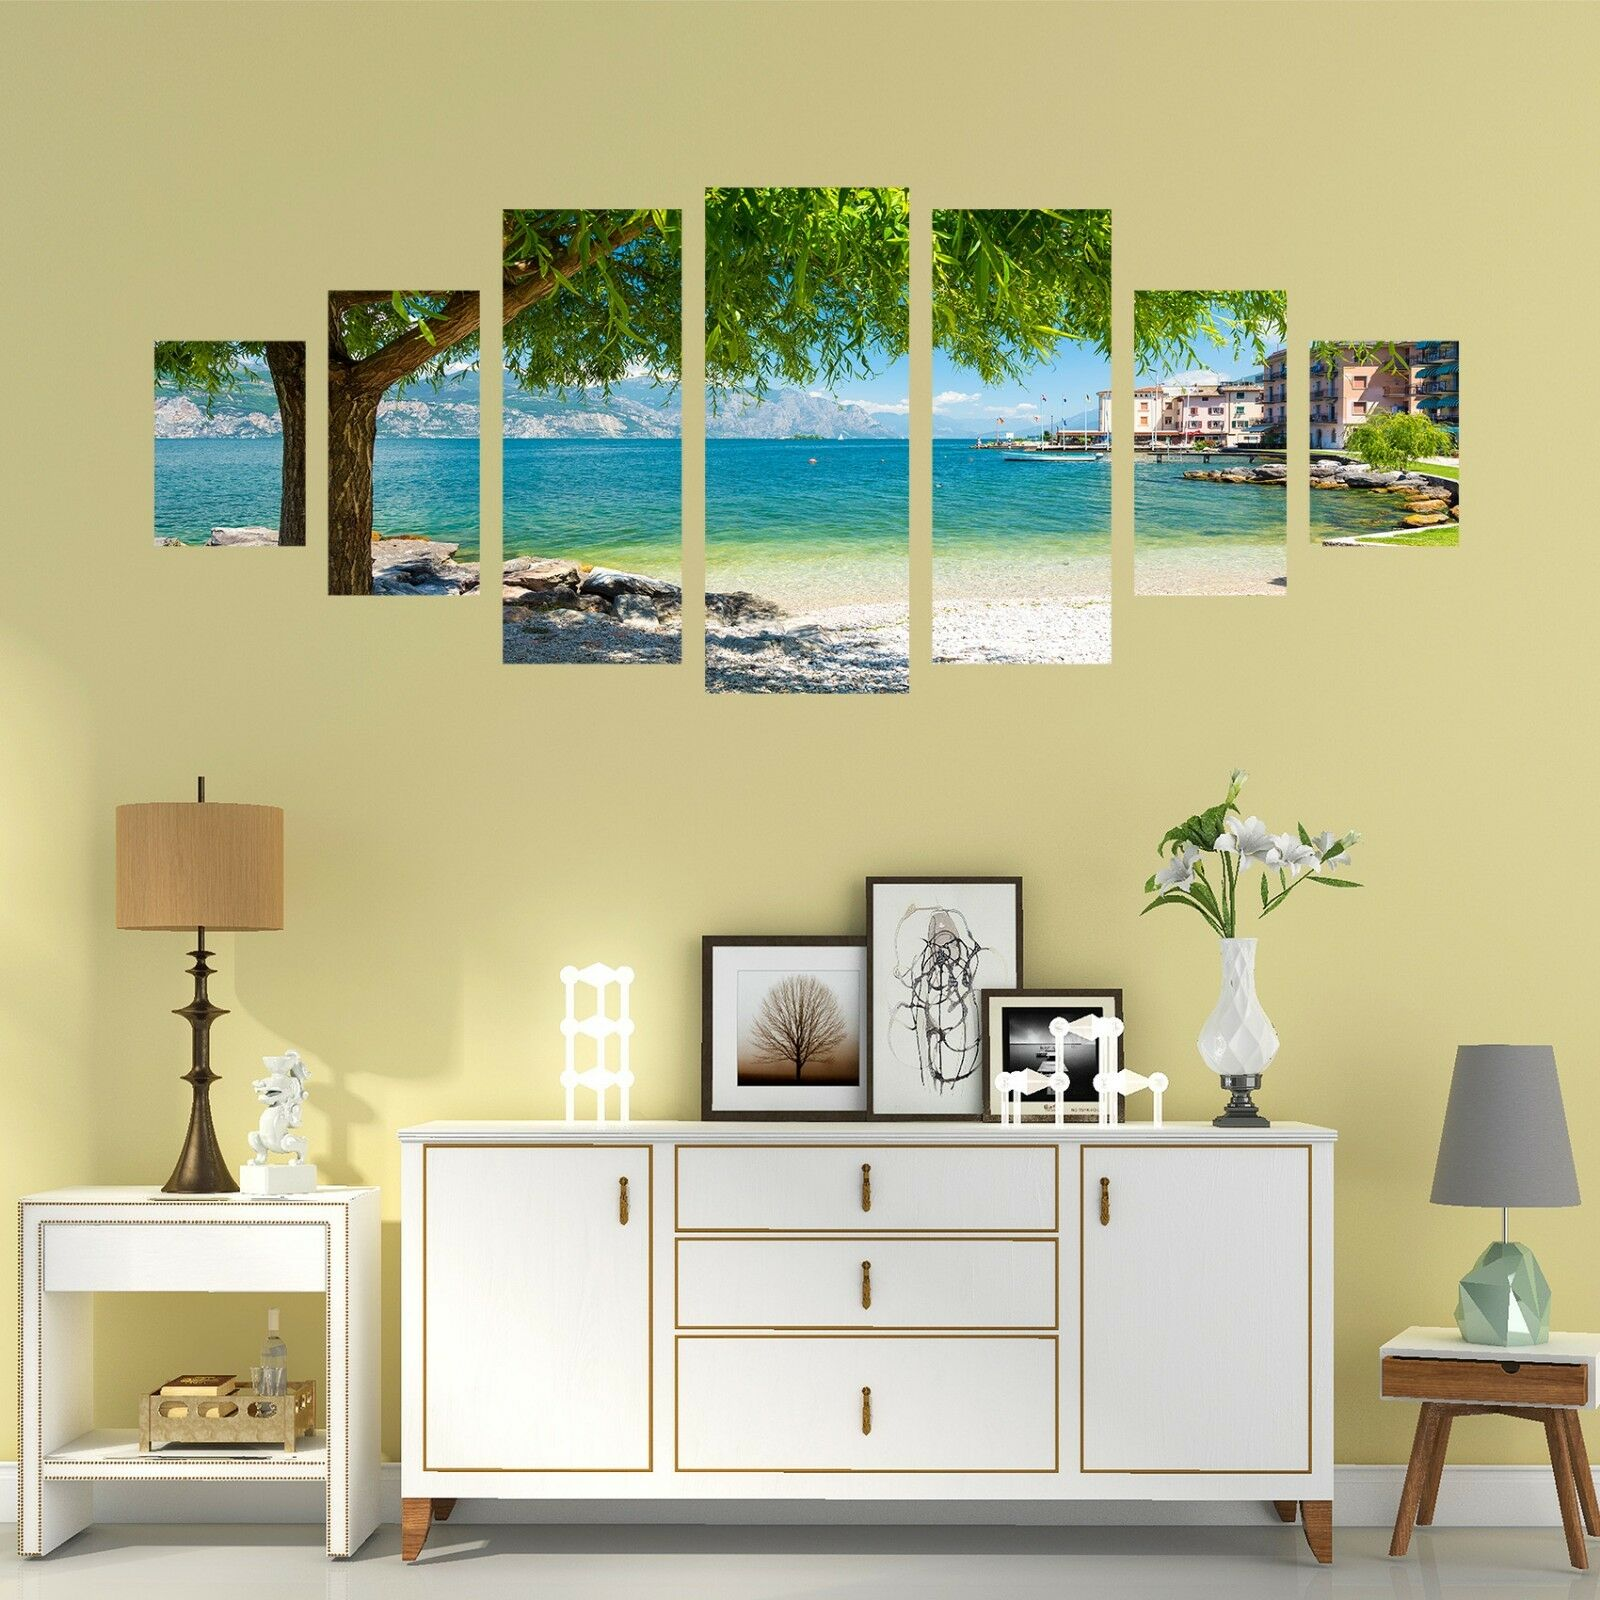 3D Green Cultivate 85 Unframed Print Wall Paper Decal Wall Deco Indoor AJ Jenny